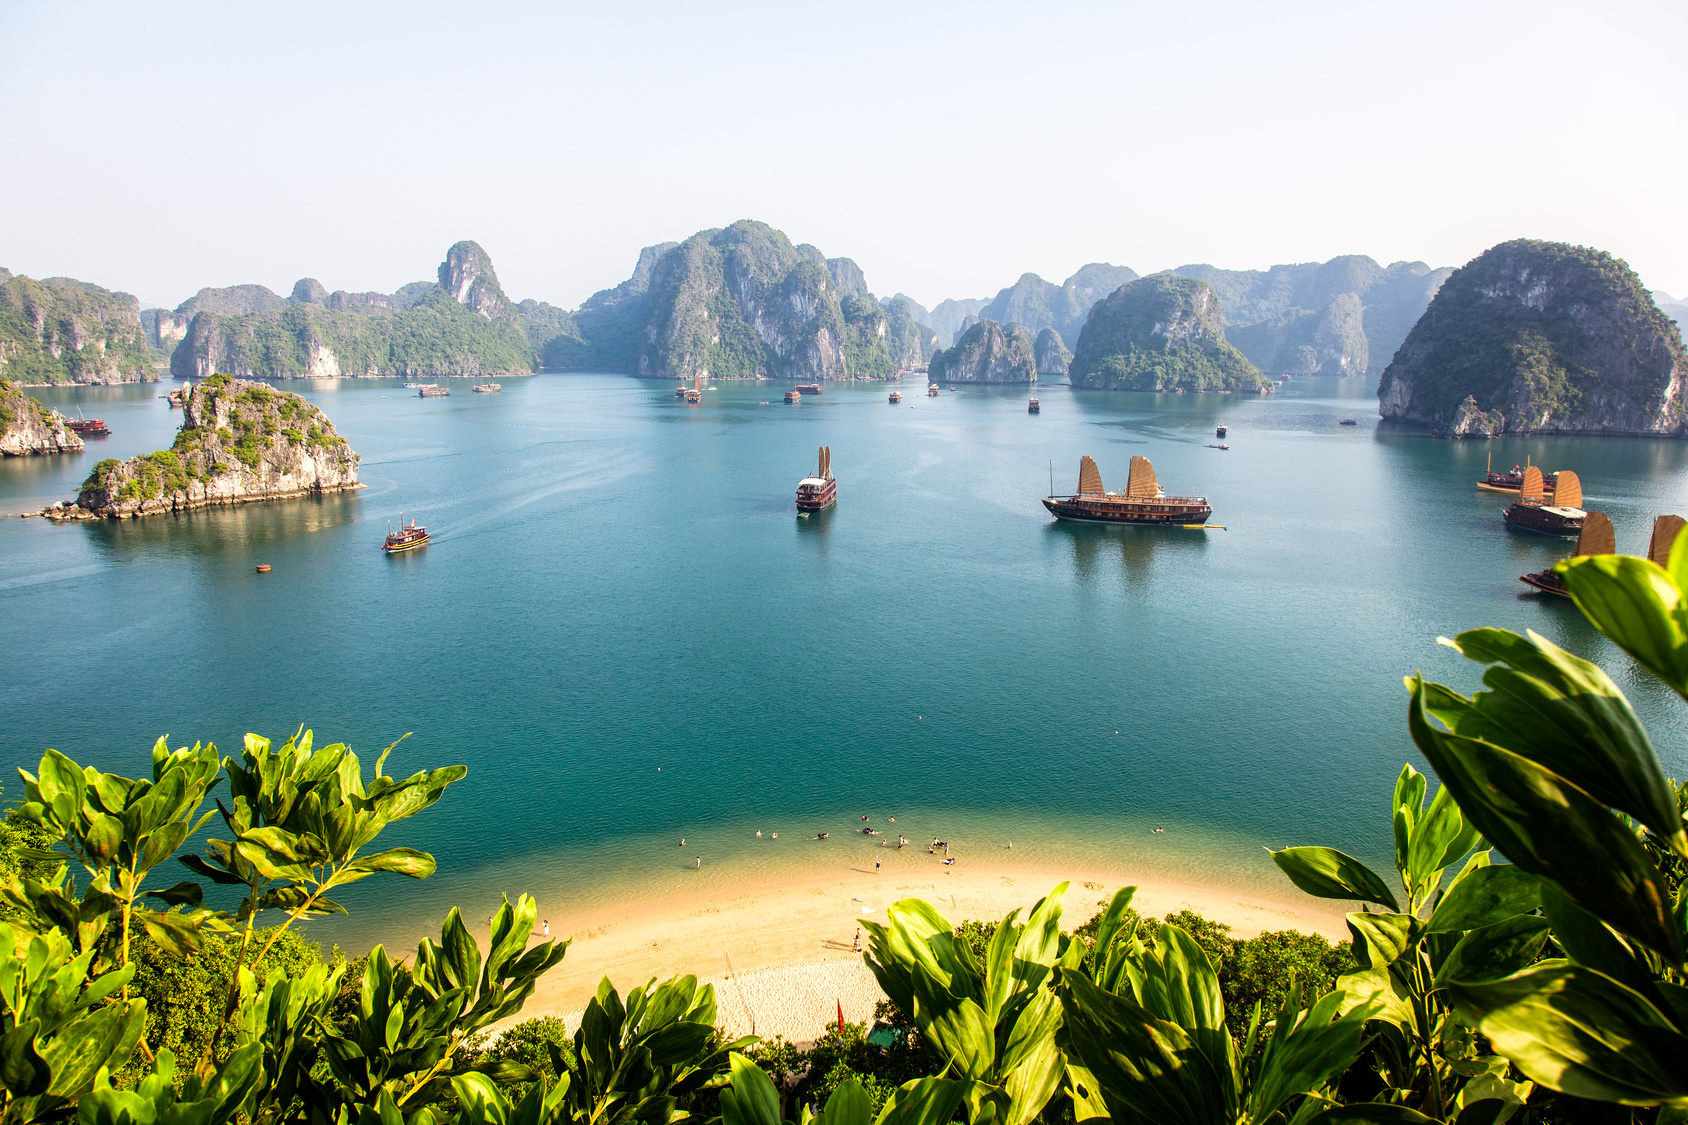 Halong Bay - THE TOP 5 Hanoi Shore Excursions